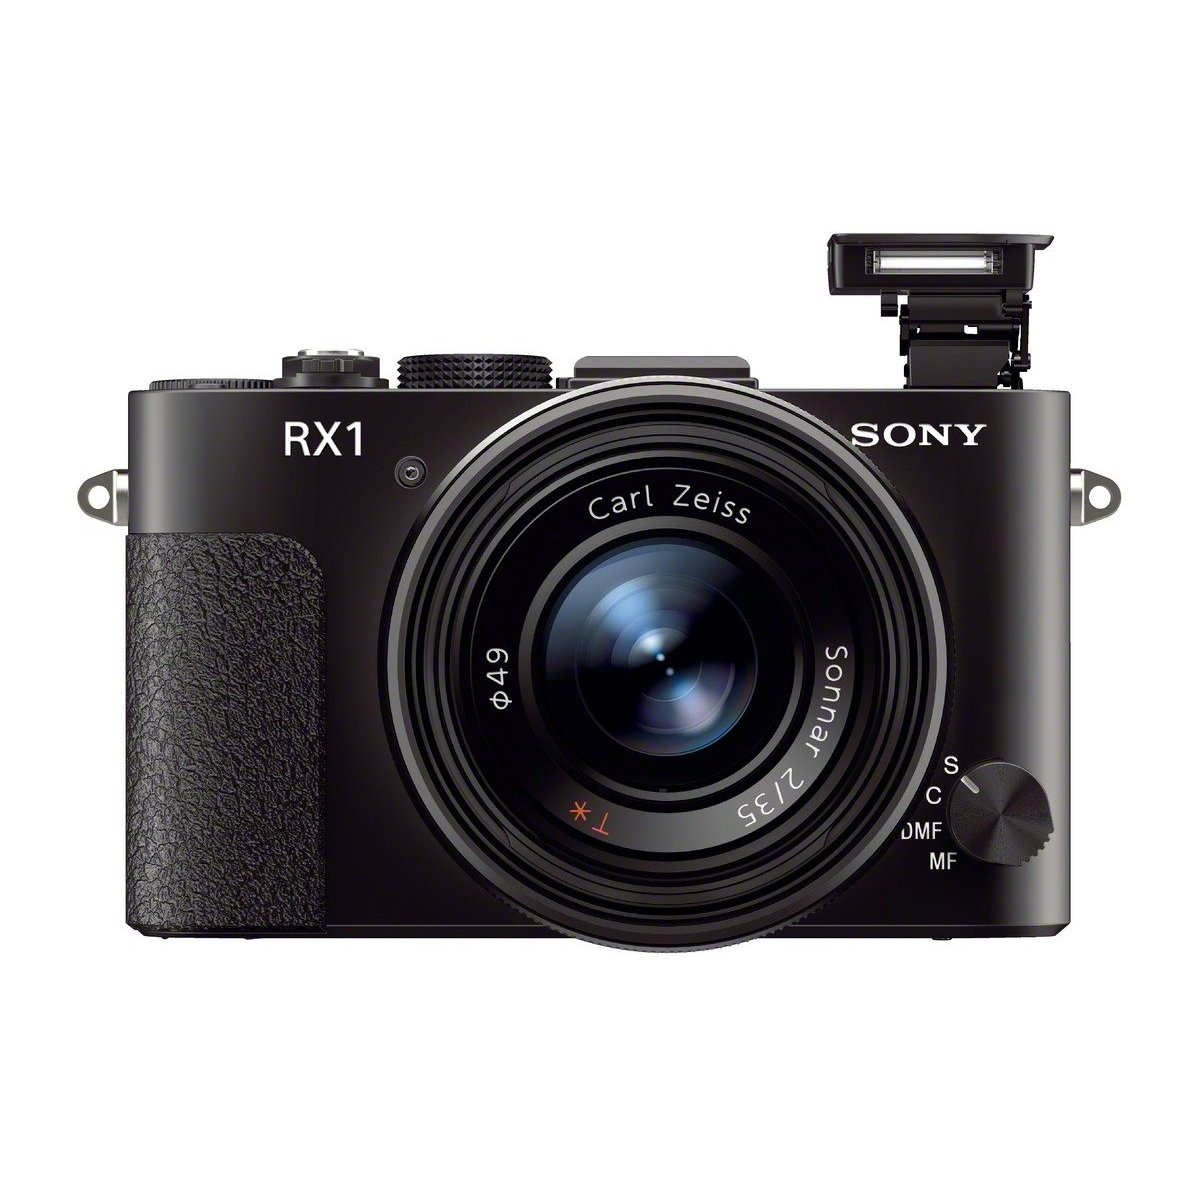 Sony DSC-RX1 Price, Specs, Release Date, Where to Buy | Camera News at